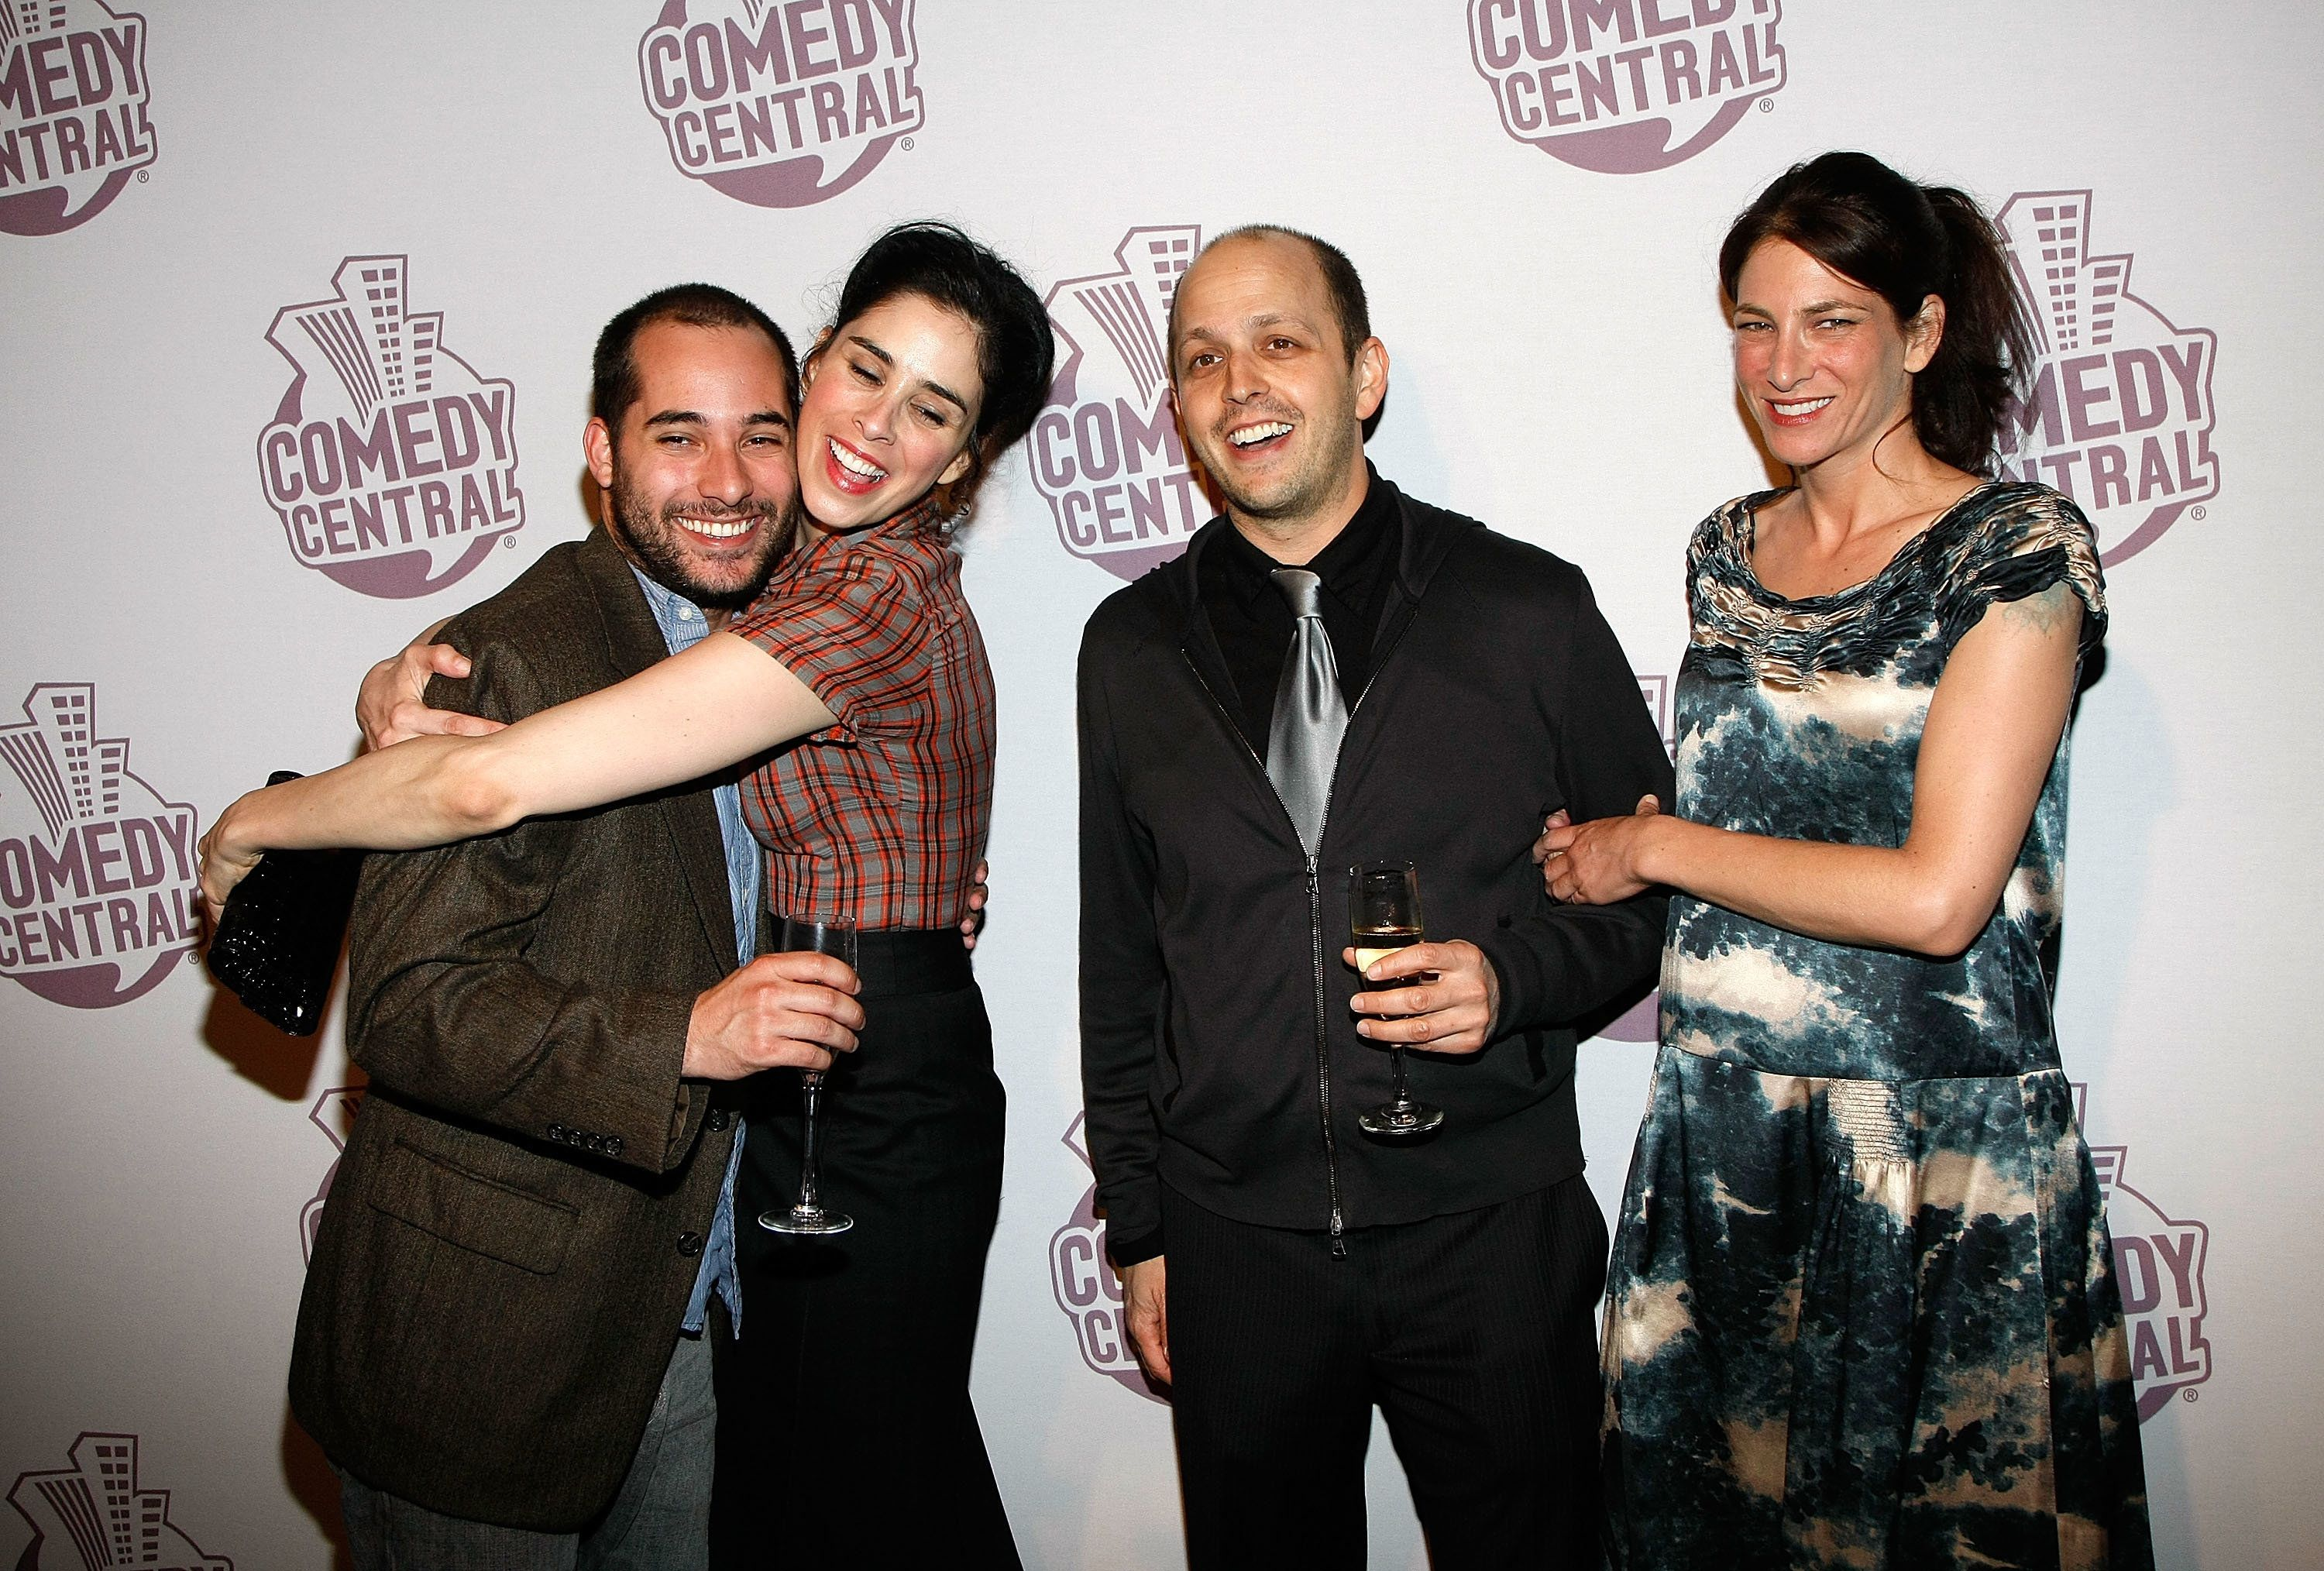 'The Sarah Silverman Program' writer Harris Wittels and comedian Sarah Silverman arrive at Comedy Central's Emmy Awards party